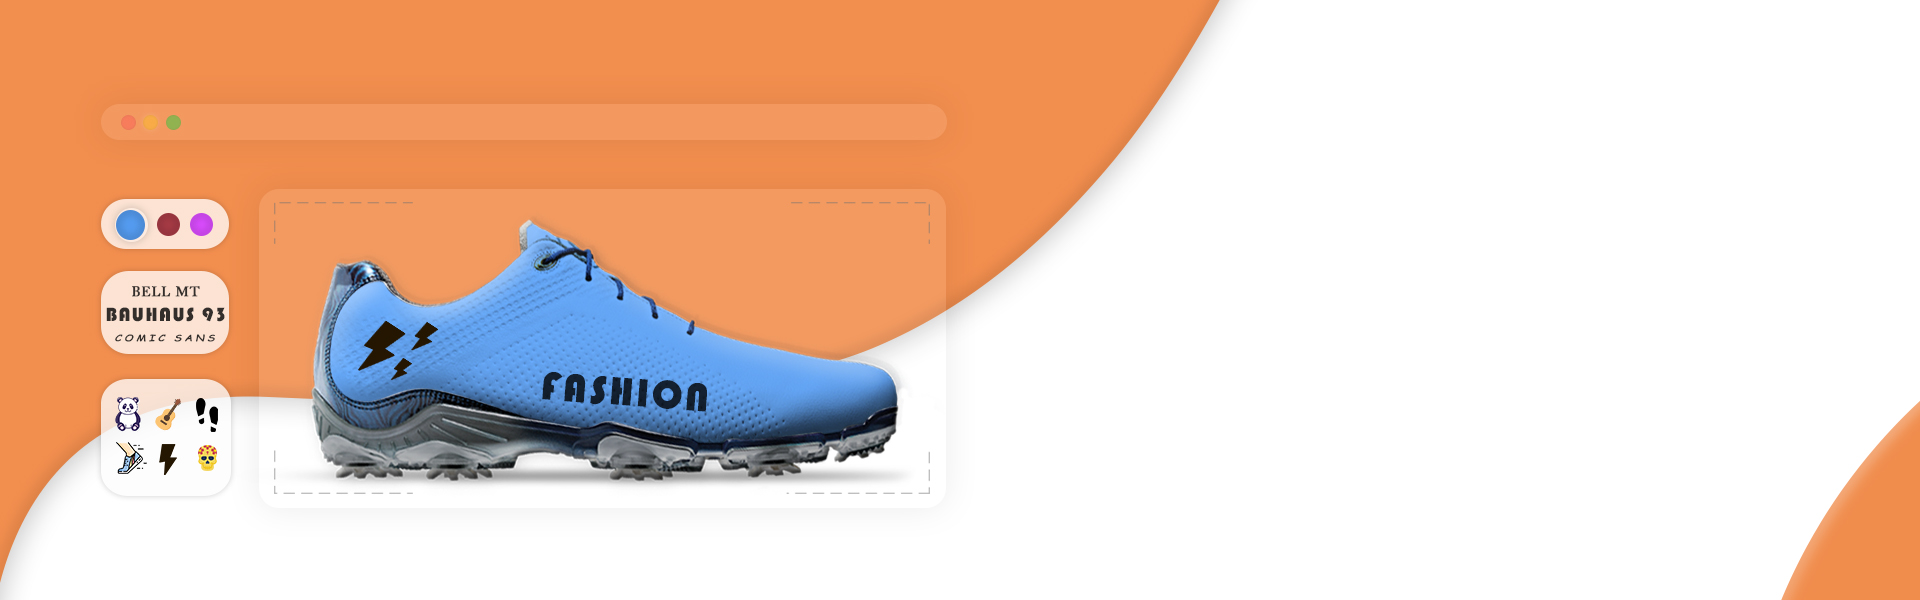 online-shoes-design-software-magento-extension